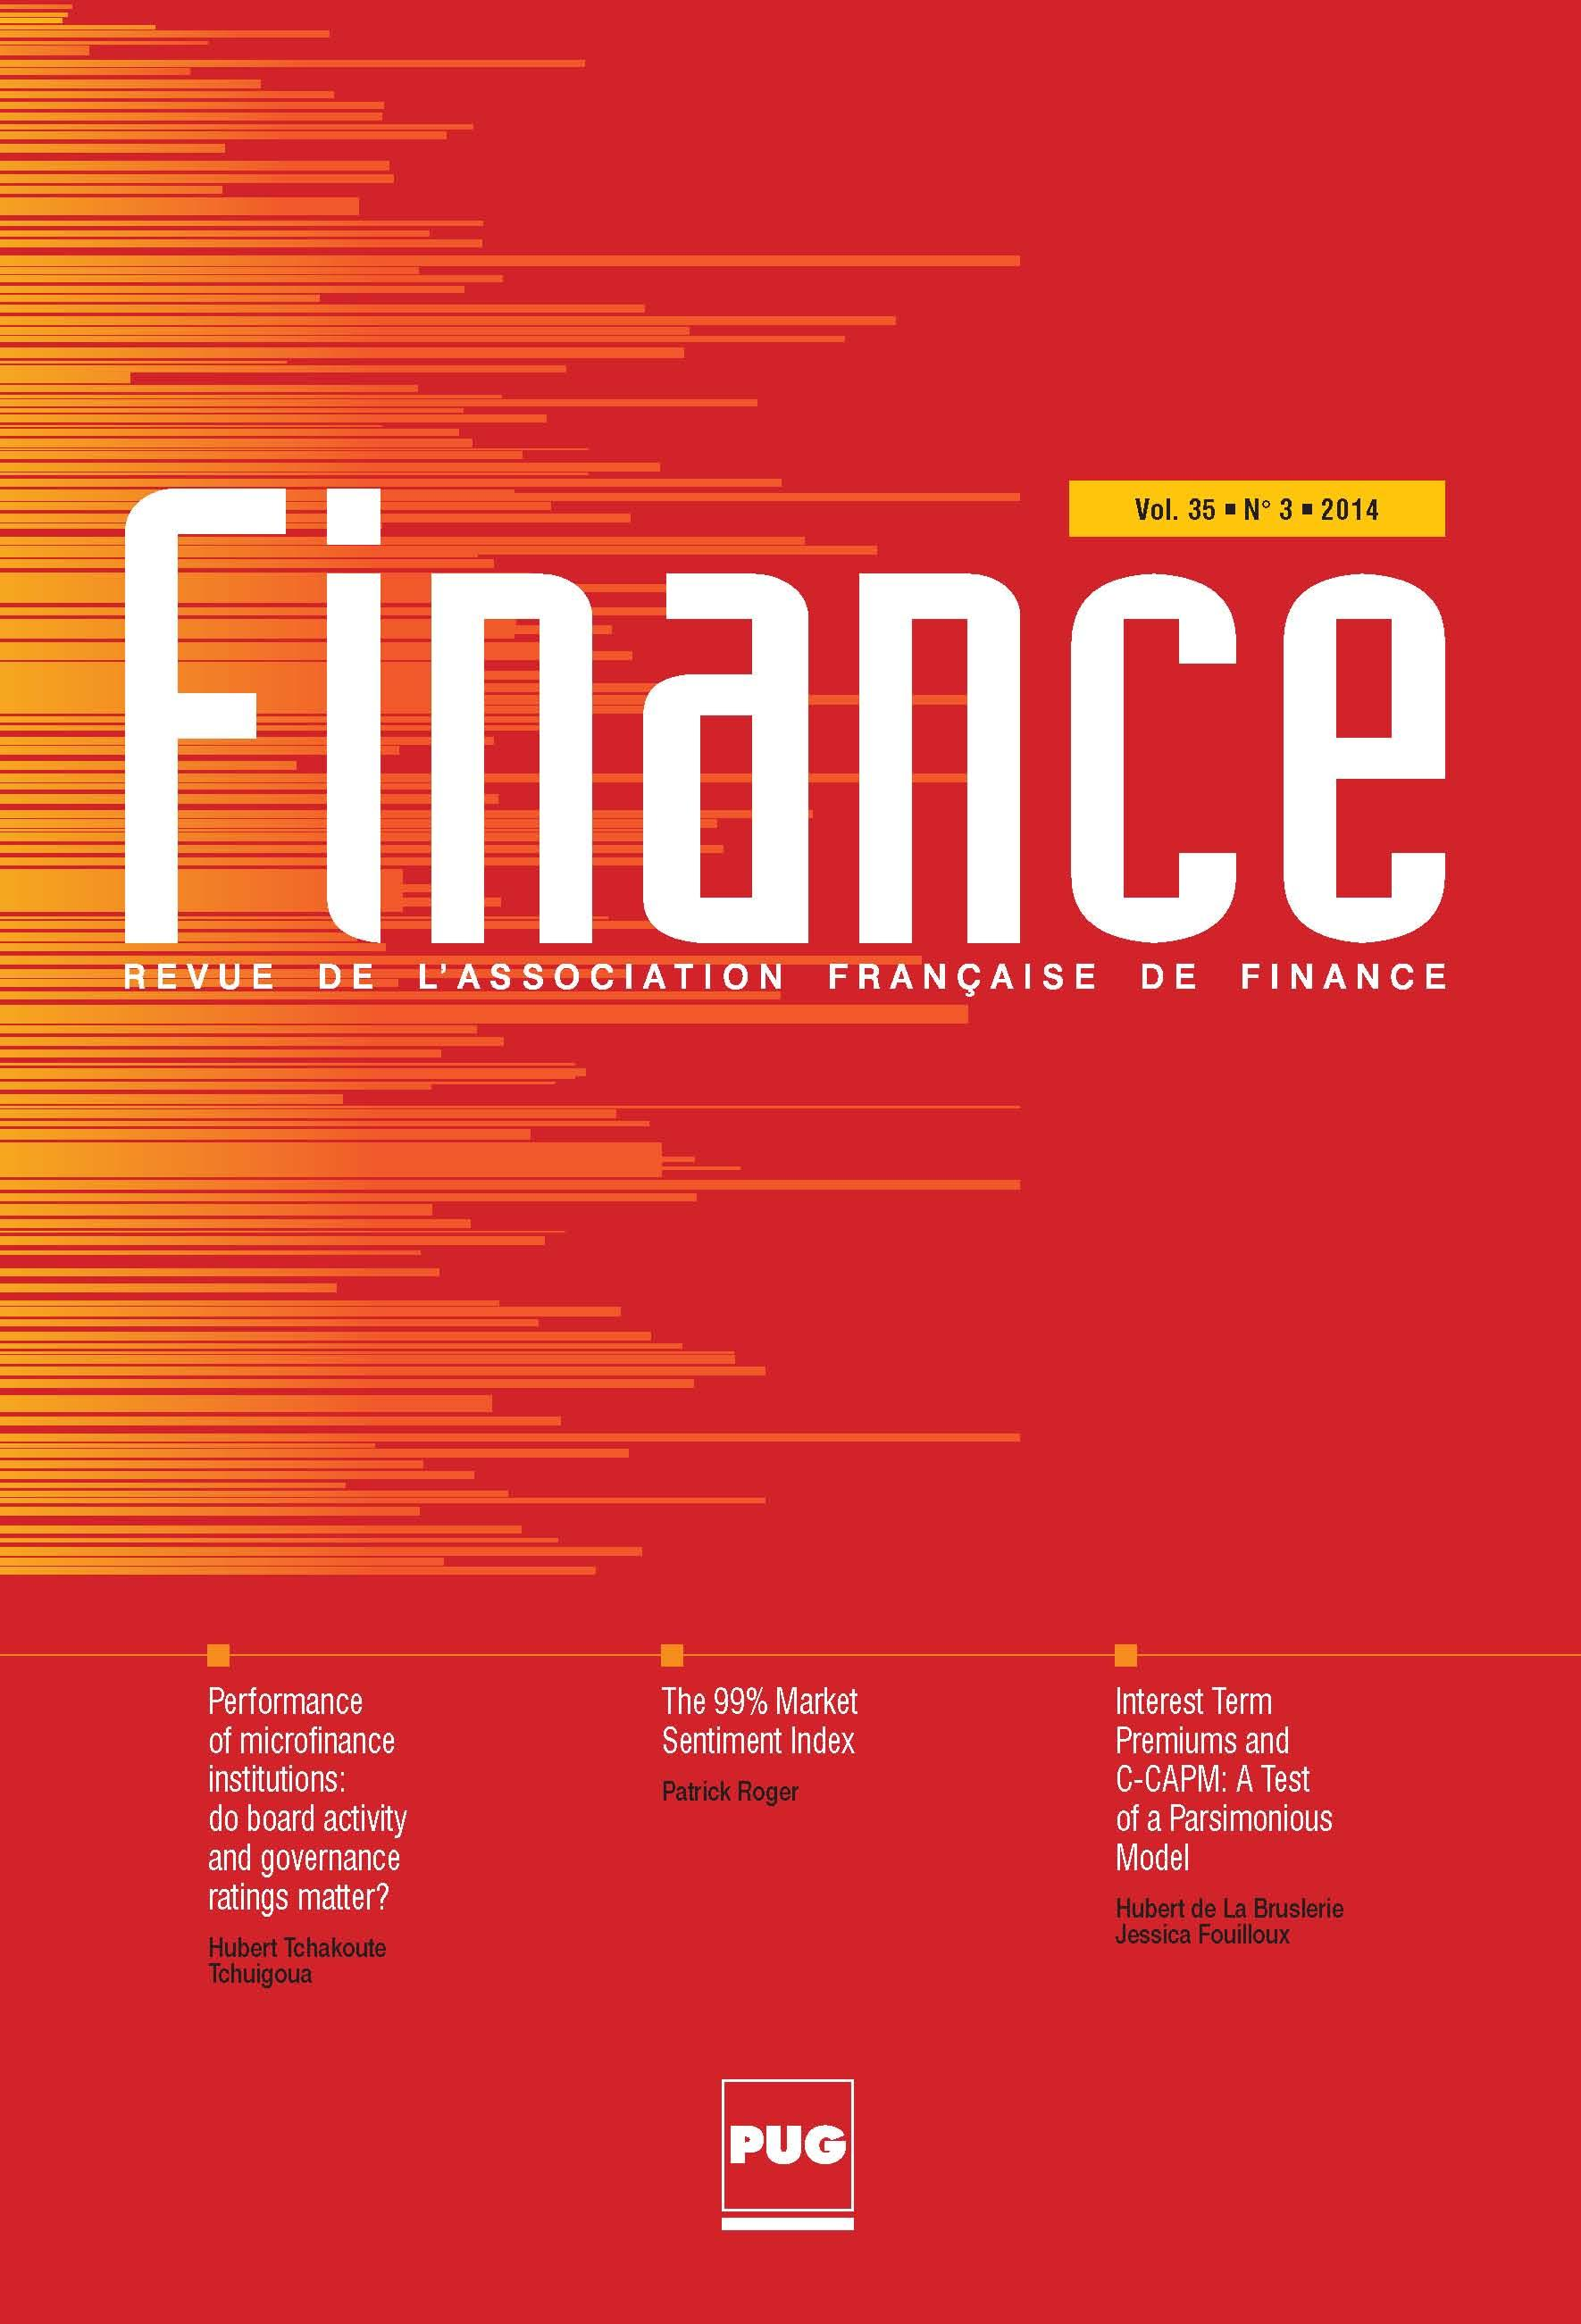 Performance of microfinance institutions do board activity and ...